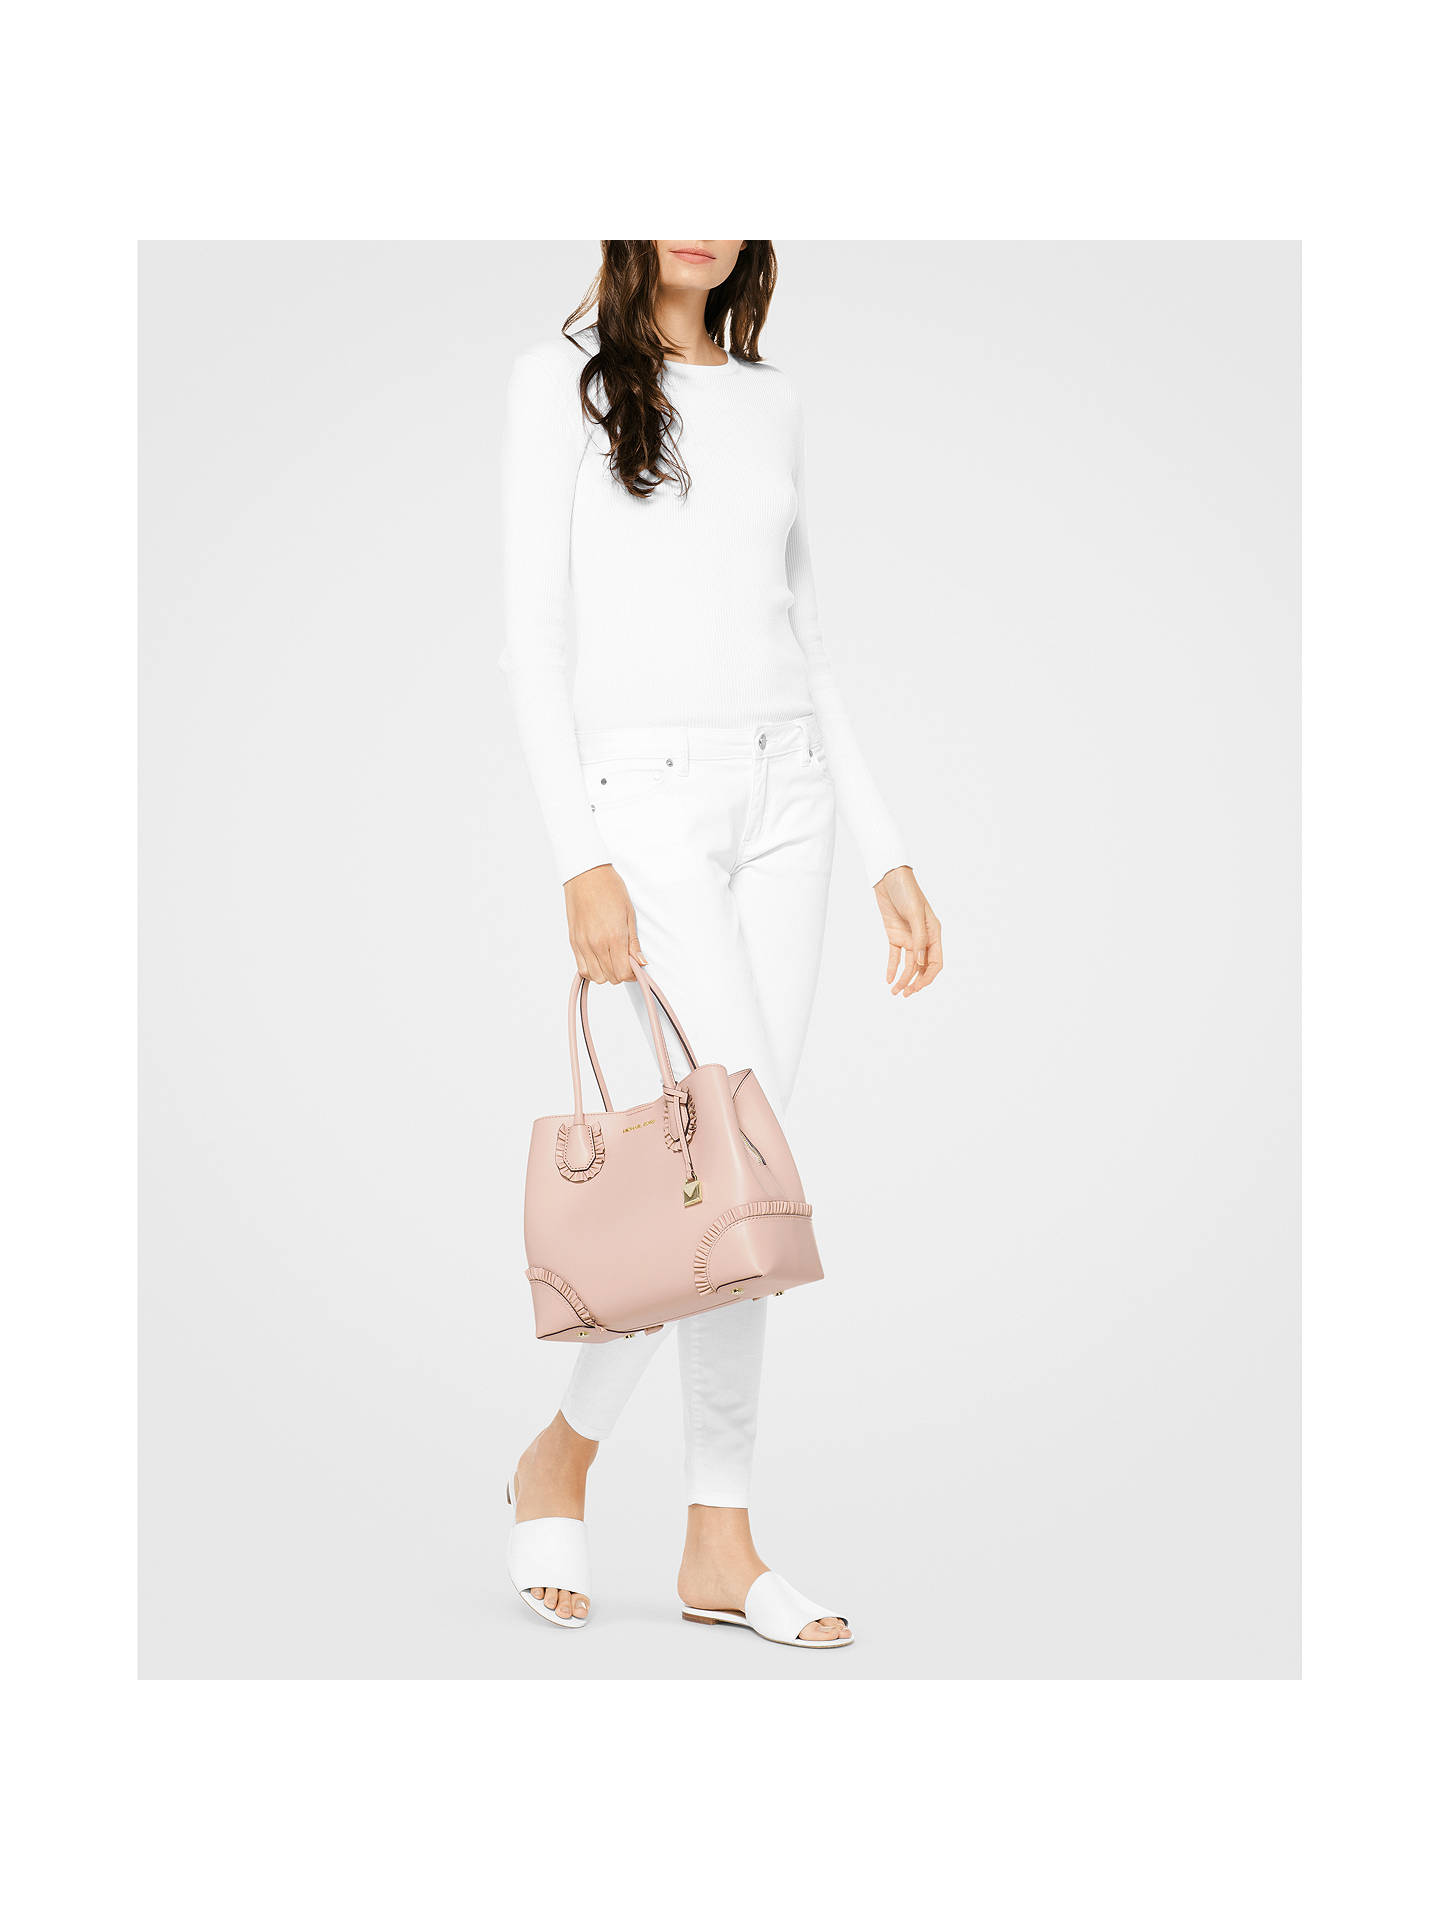 765c280ef4f573 ... Buy MICHAEL Michael Kors Mercer Gallery Large Leather Tote Bag, Soft  Pink Online at johnlewis